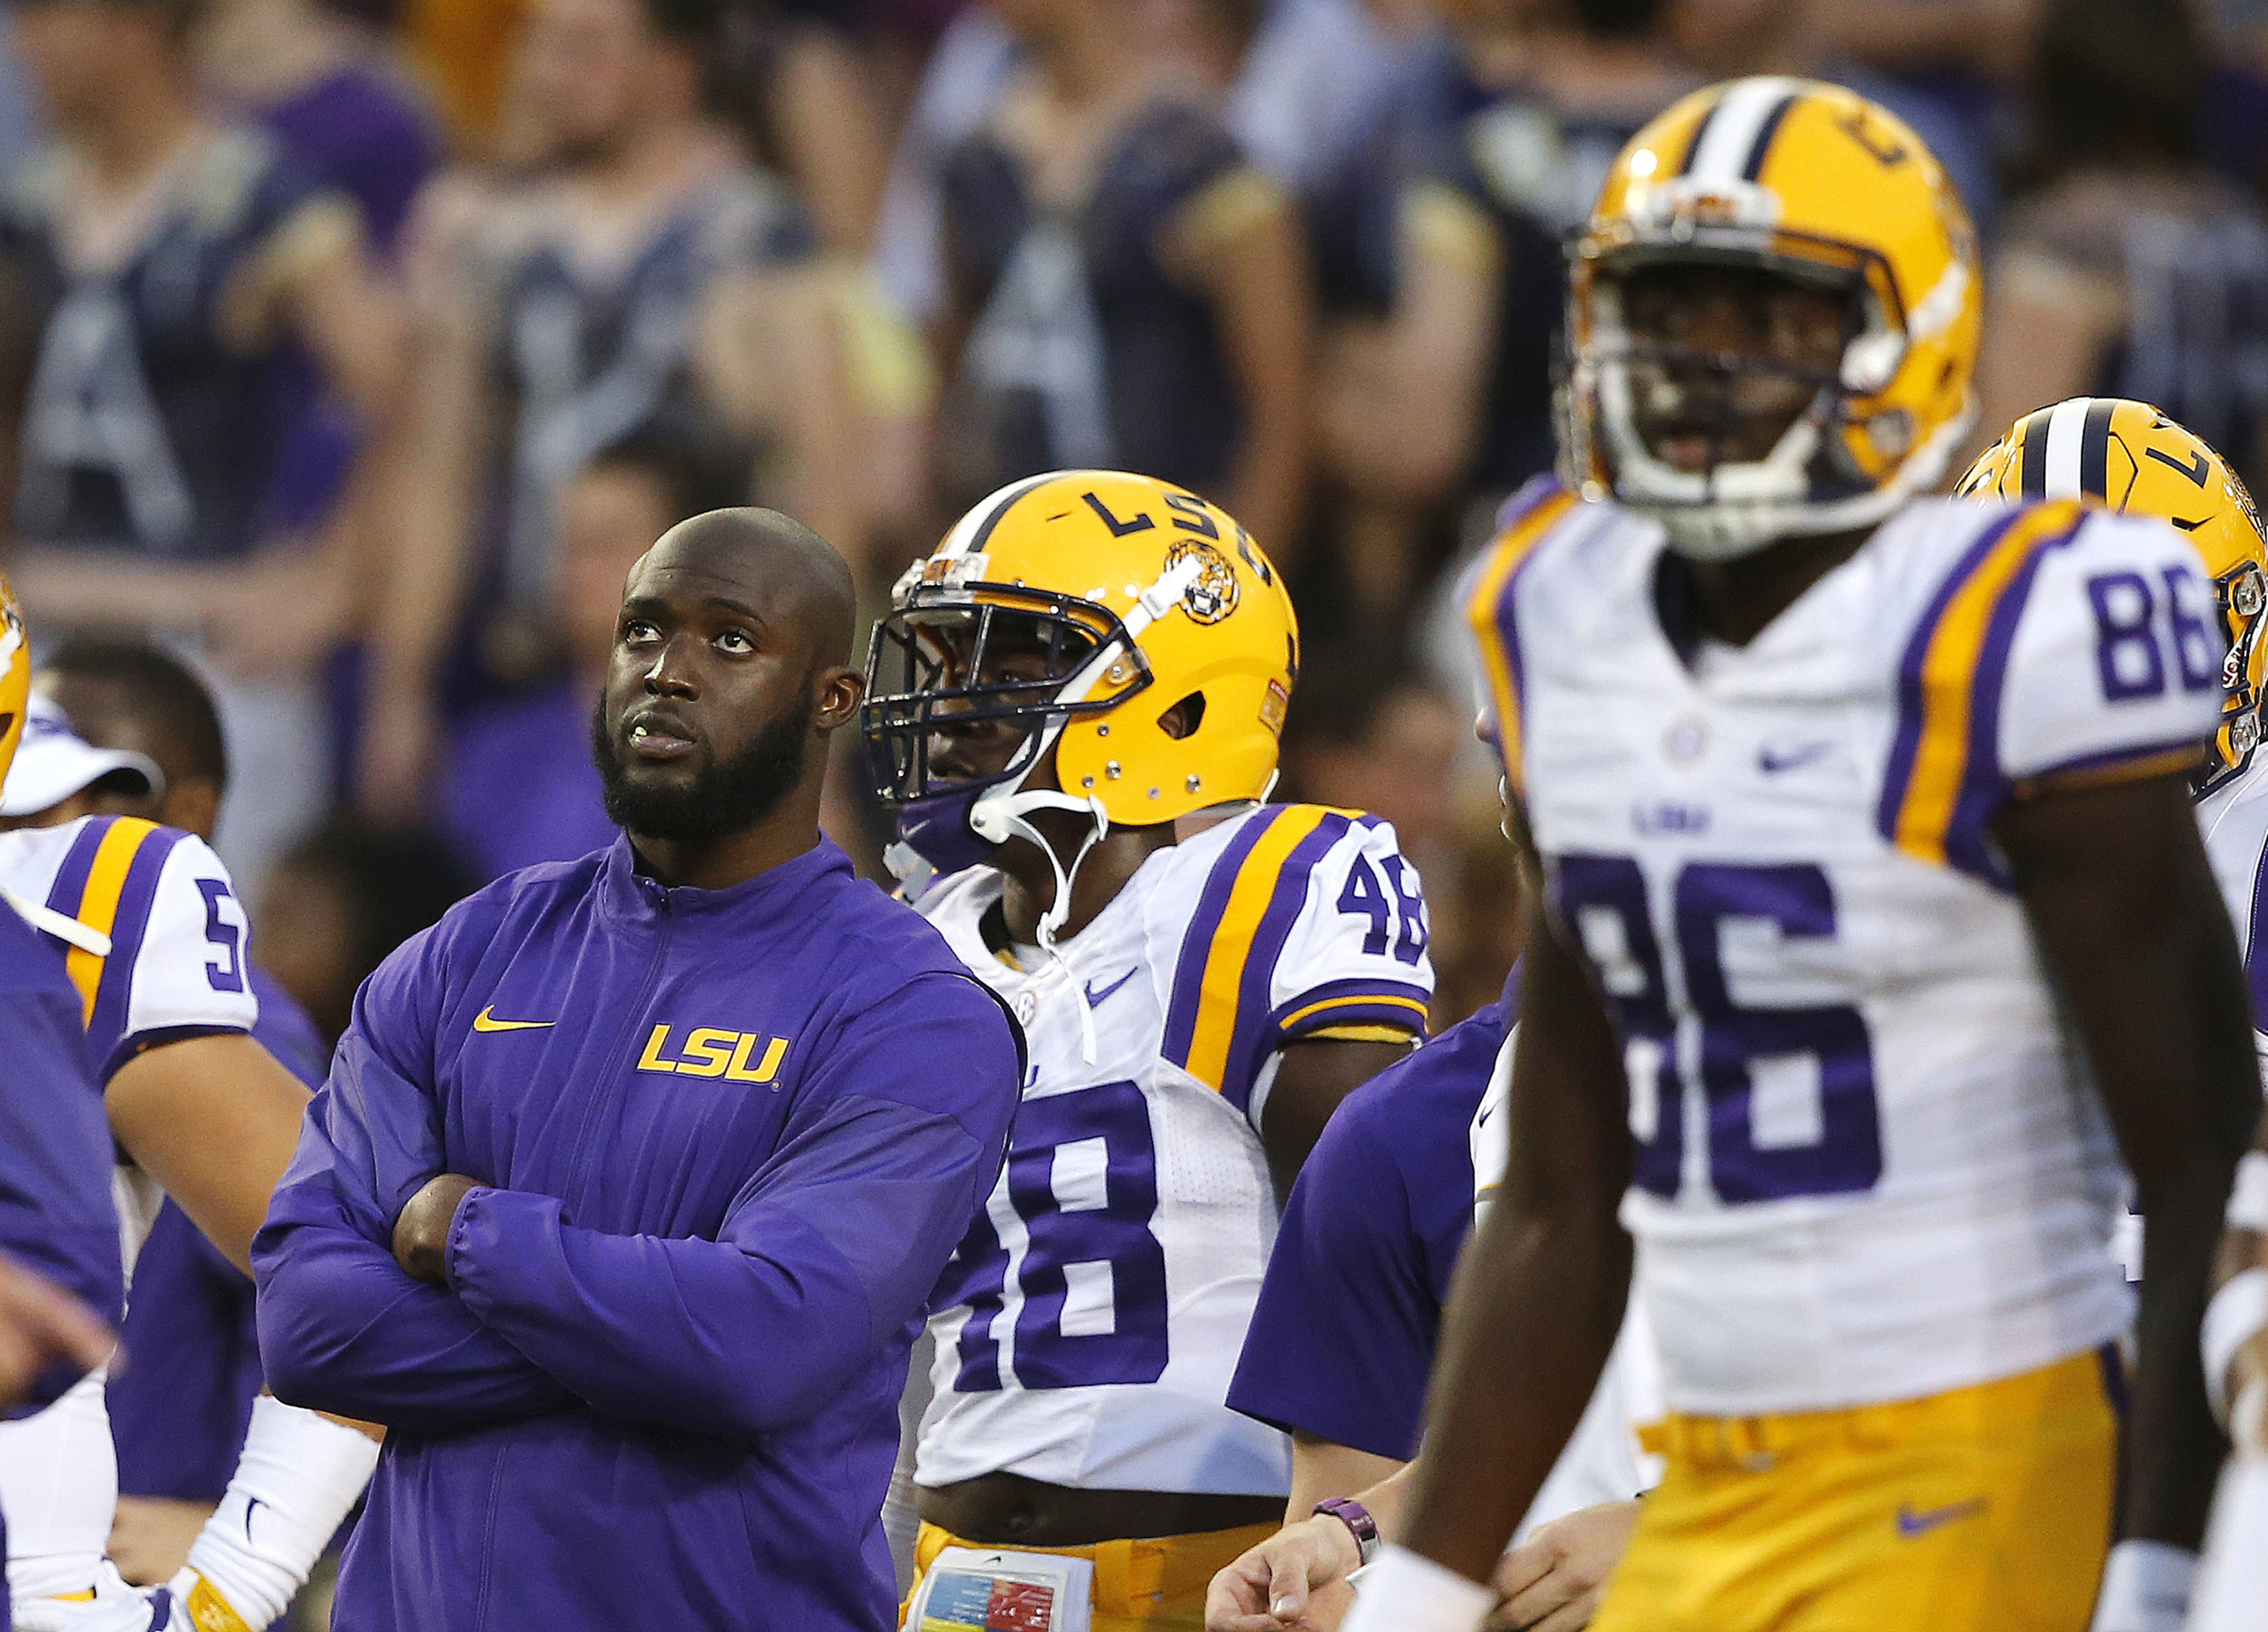 FILE - In this Sept. 10, 2016, file photo, LSU running back Leonard Fournette, left, watches players warm up for an NCAA college football game against Jacksonville State in Baton Rouge, La., Fournette did not play in the game. Regardless of how much Fourn